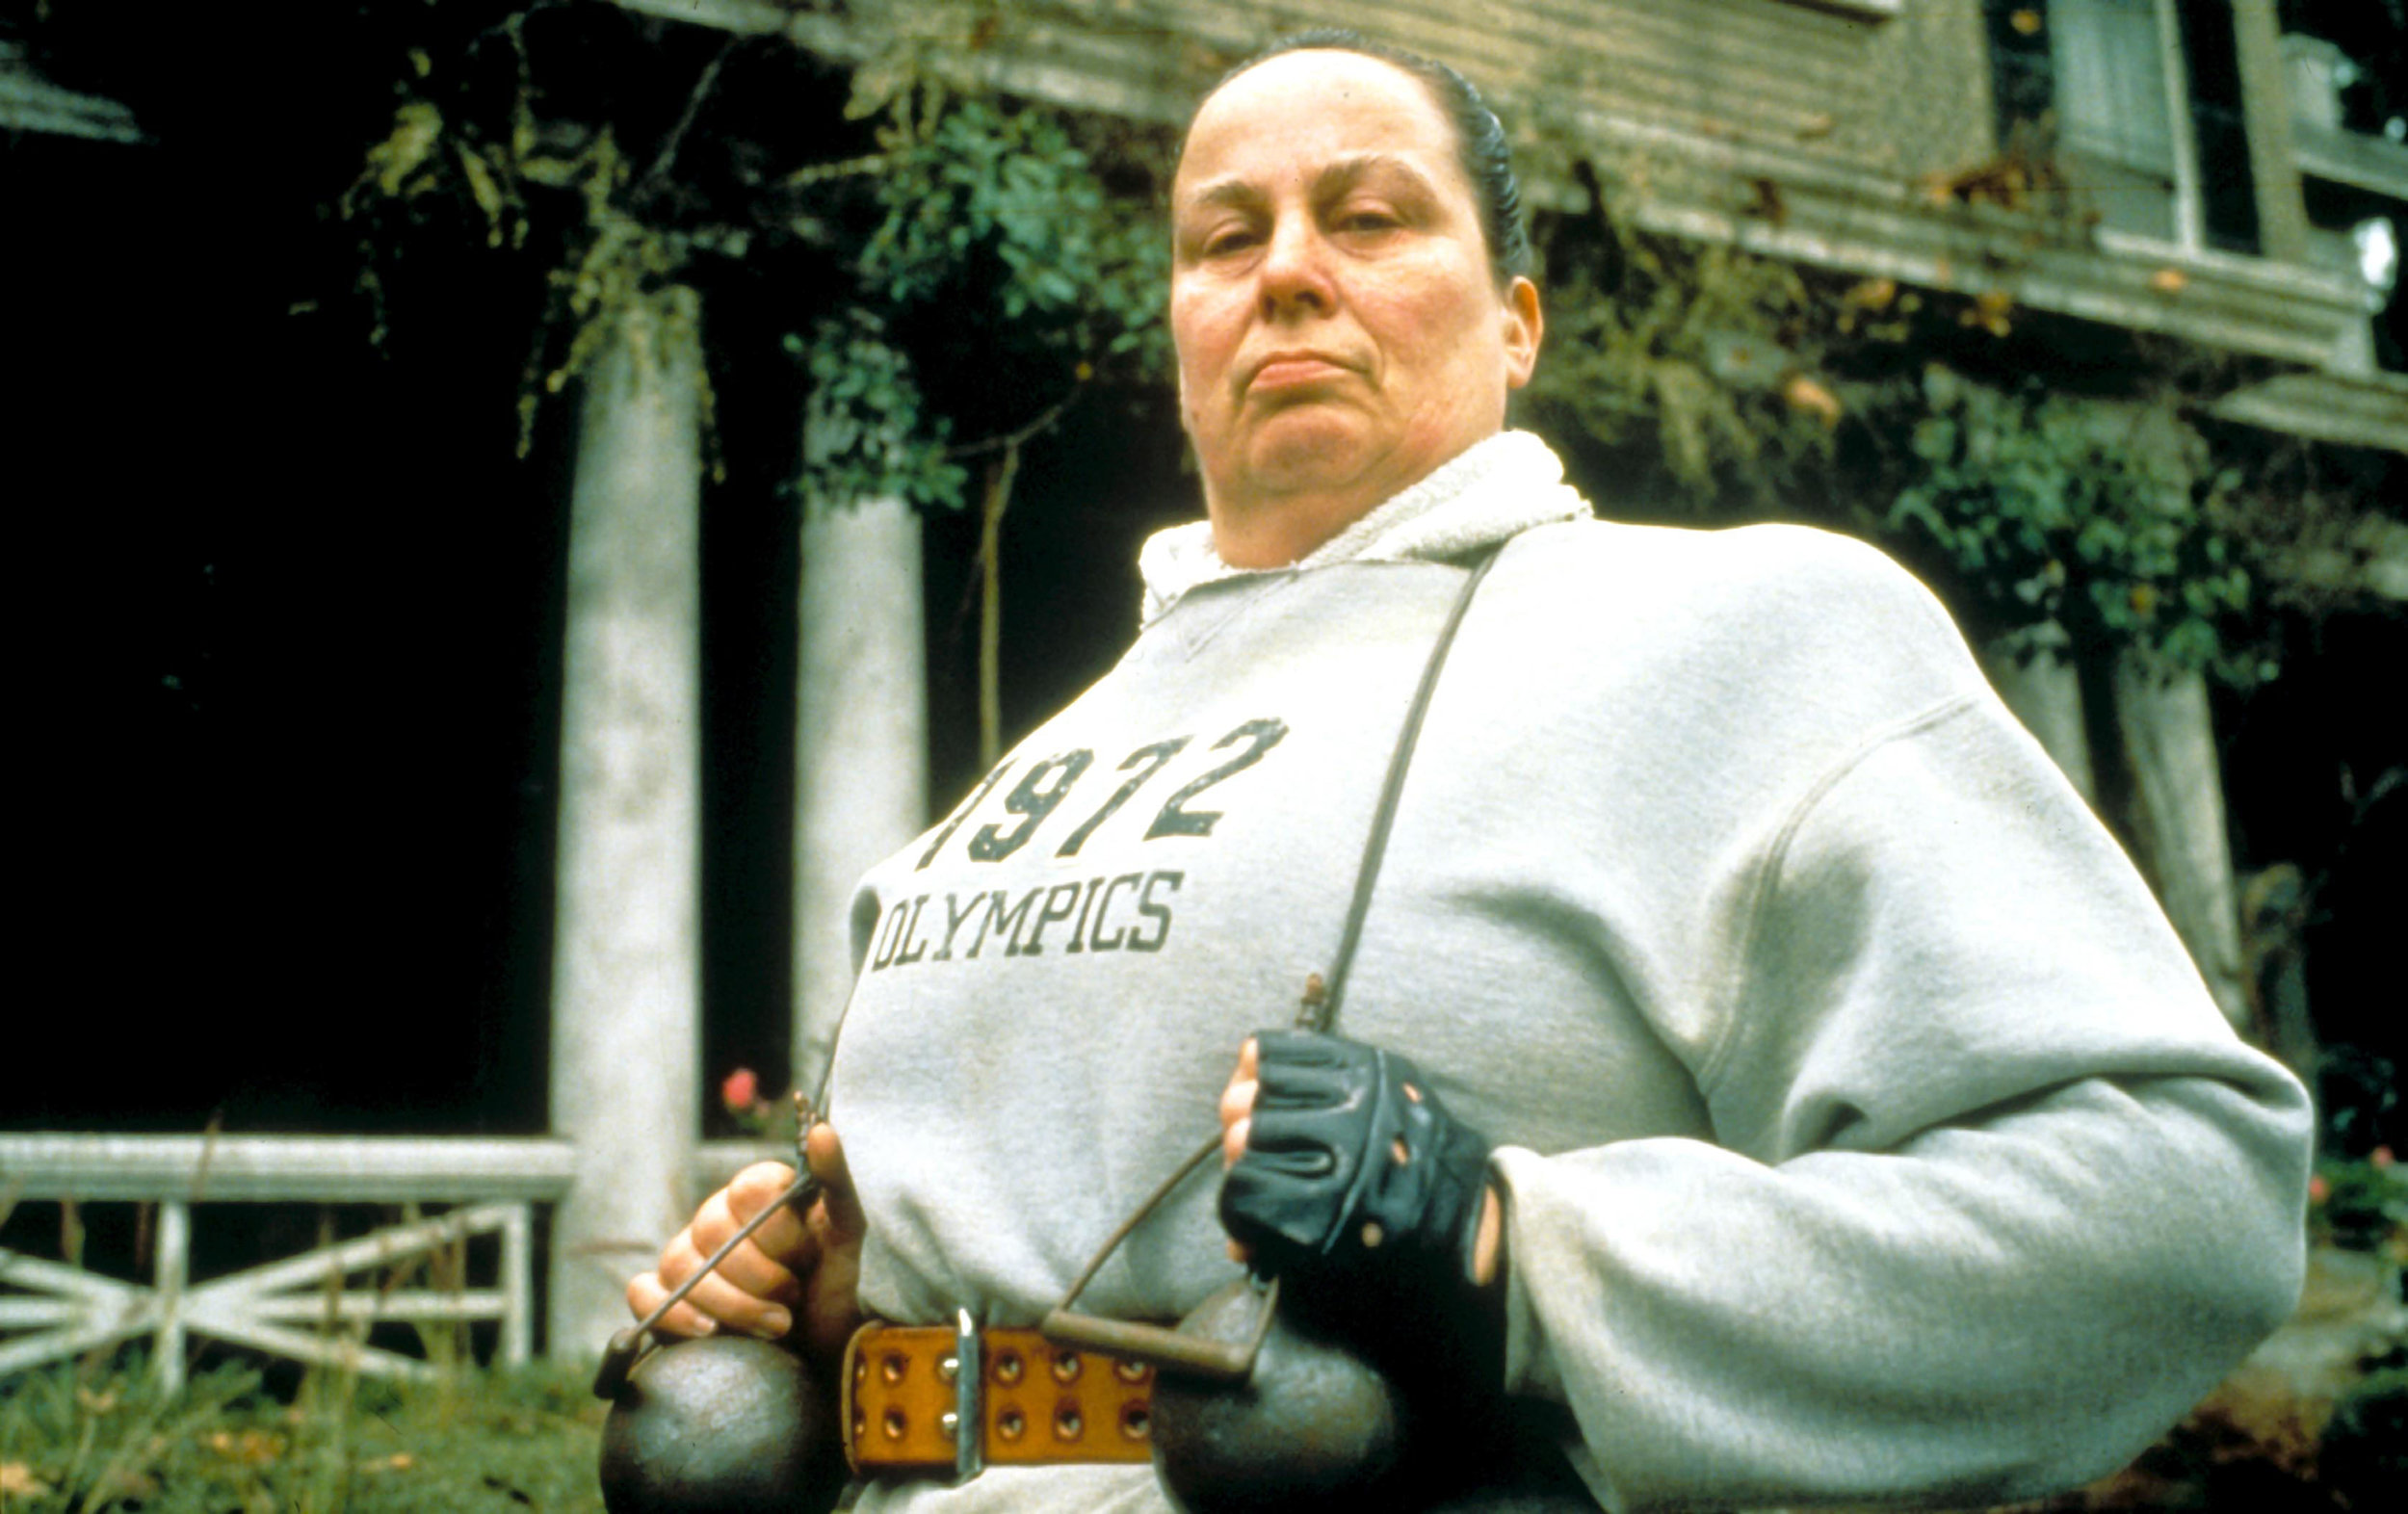 As Miss Trunchbull in the 1996 film version of Matilda